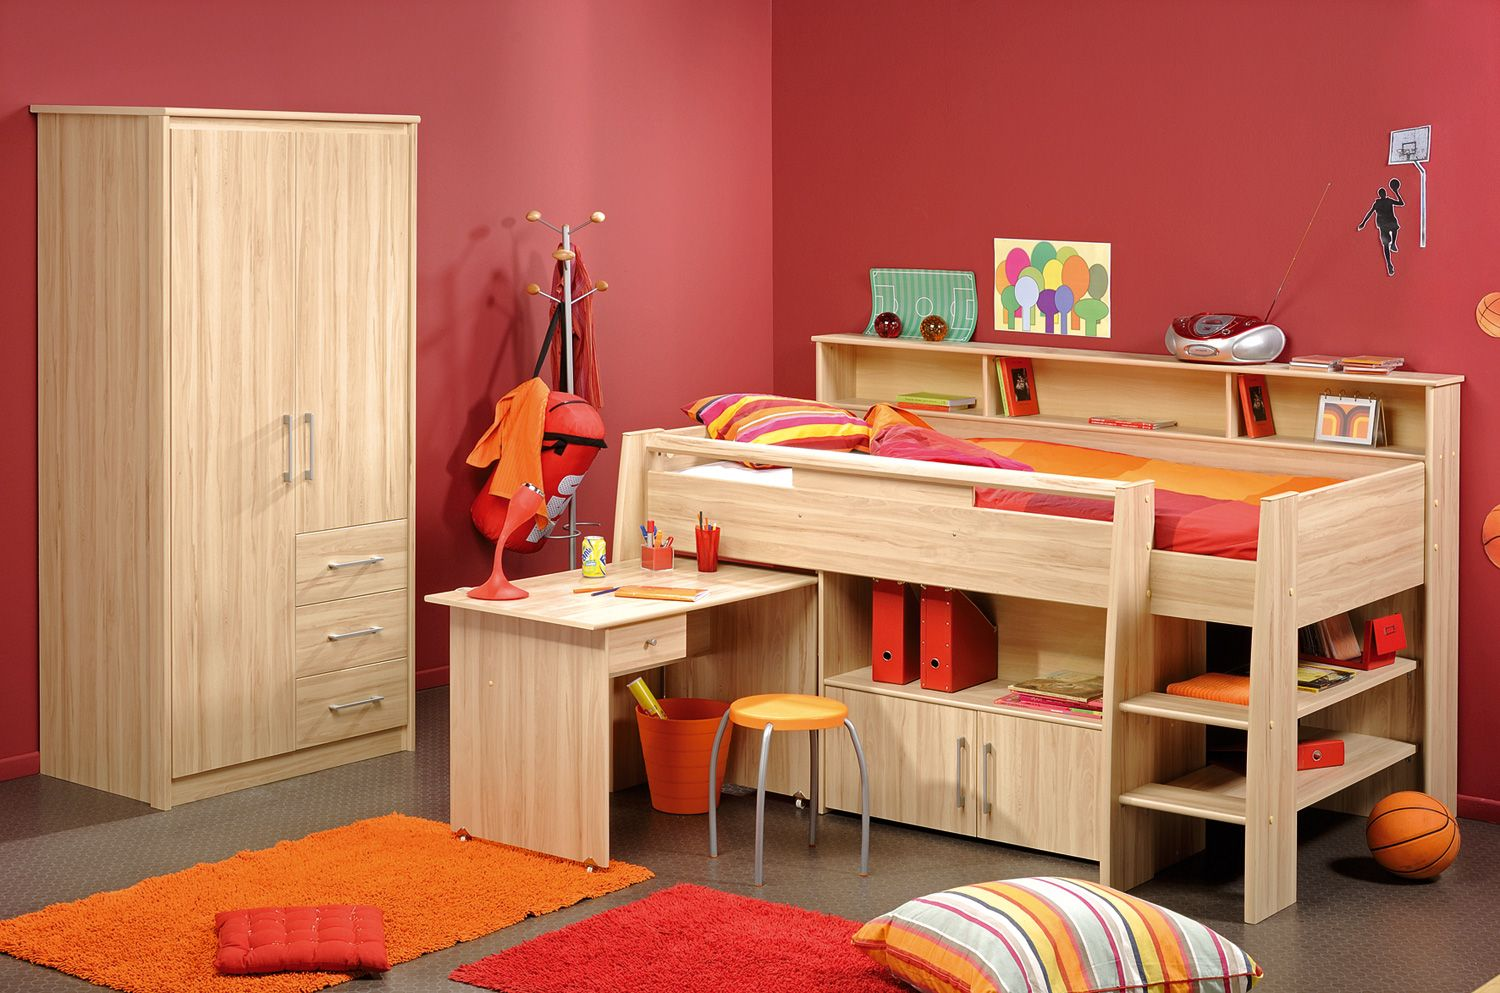 Loft bed with desk and pull out bed  Kurt Cabin Bed  For the Home  Pinterest  Cabin Kids cabin beds